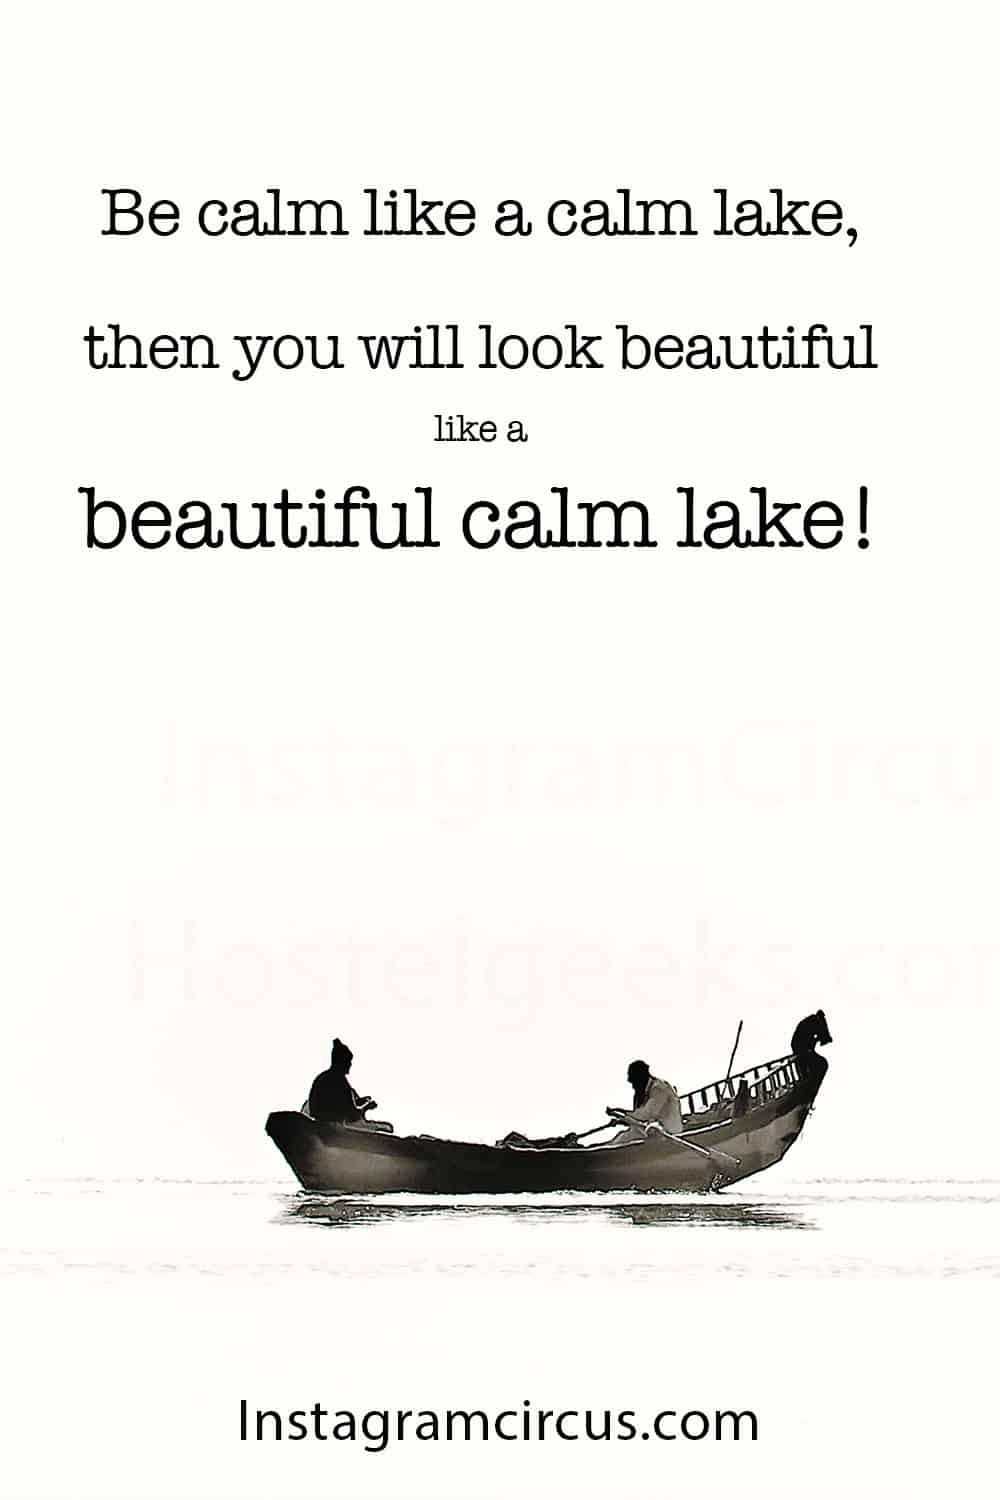 Be calm like a calm lake, then you will look beautiful like a beautiful calm lake!